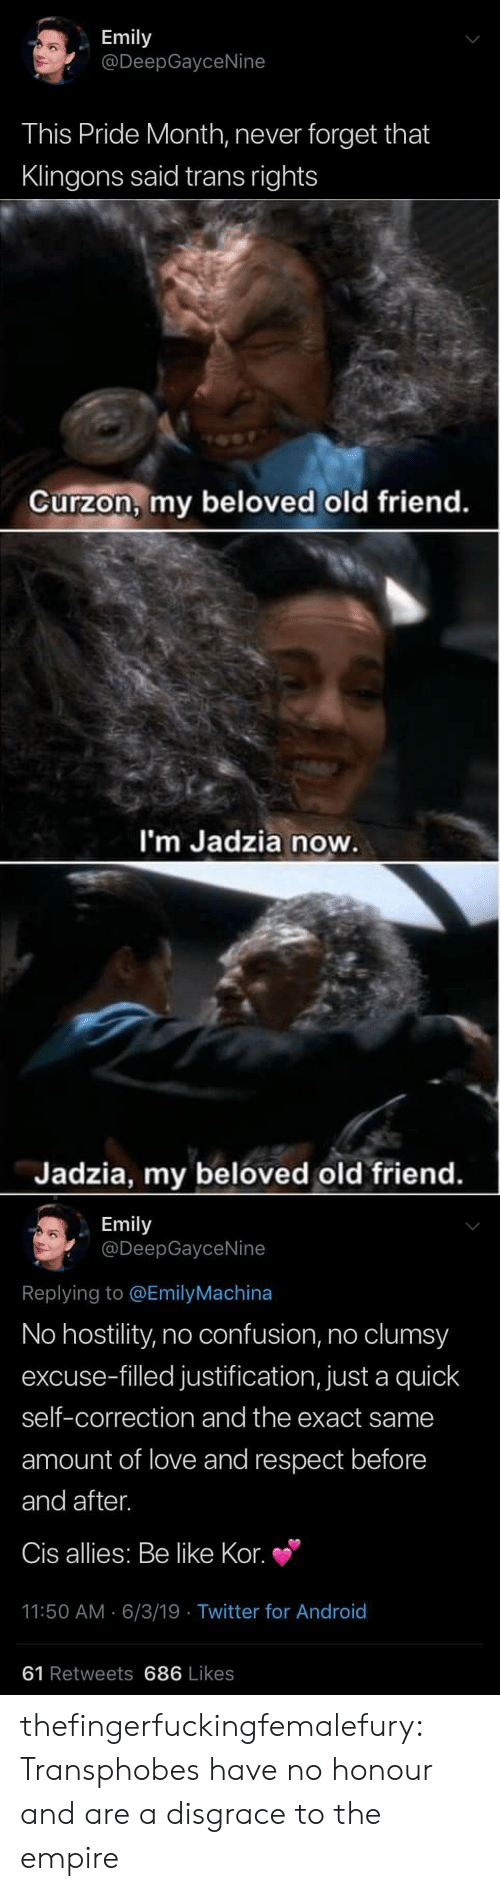 Correction: Emily  @DeepGayceNine  This Pride Month, never forget that  Klingons said trans rights   Curzon, my beloved old friend.  I'm Jadzia now.  Jadzia, my beloved old friend.   Emily  @DeepGayceNine  Replying to @EmilyMachina  No hostility, no confusion, no clumsy  excuse-filled justification, just a quick  self-correction and the exact same  amount of love and respect before  and after.  Cis allies: Be like Kor.  11:50 AM 6/3/19 Twitter for And roid  61 Retweets 686 Likes thefingerfuckingfemalefury: Transphobes have no honour and are a disgrace to the empire